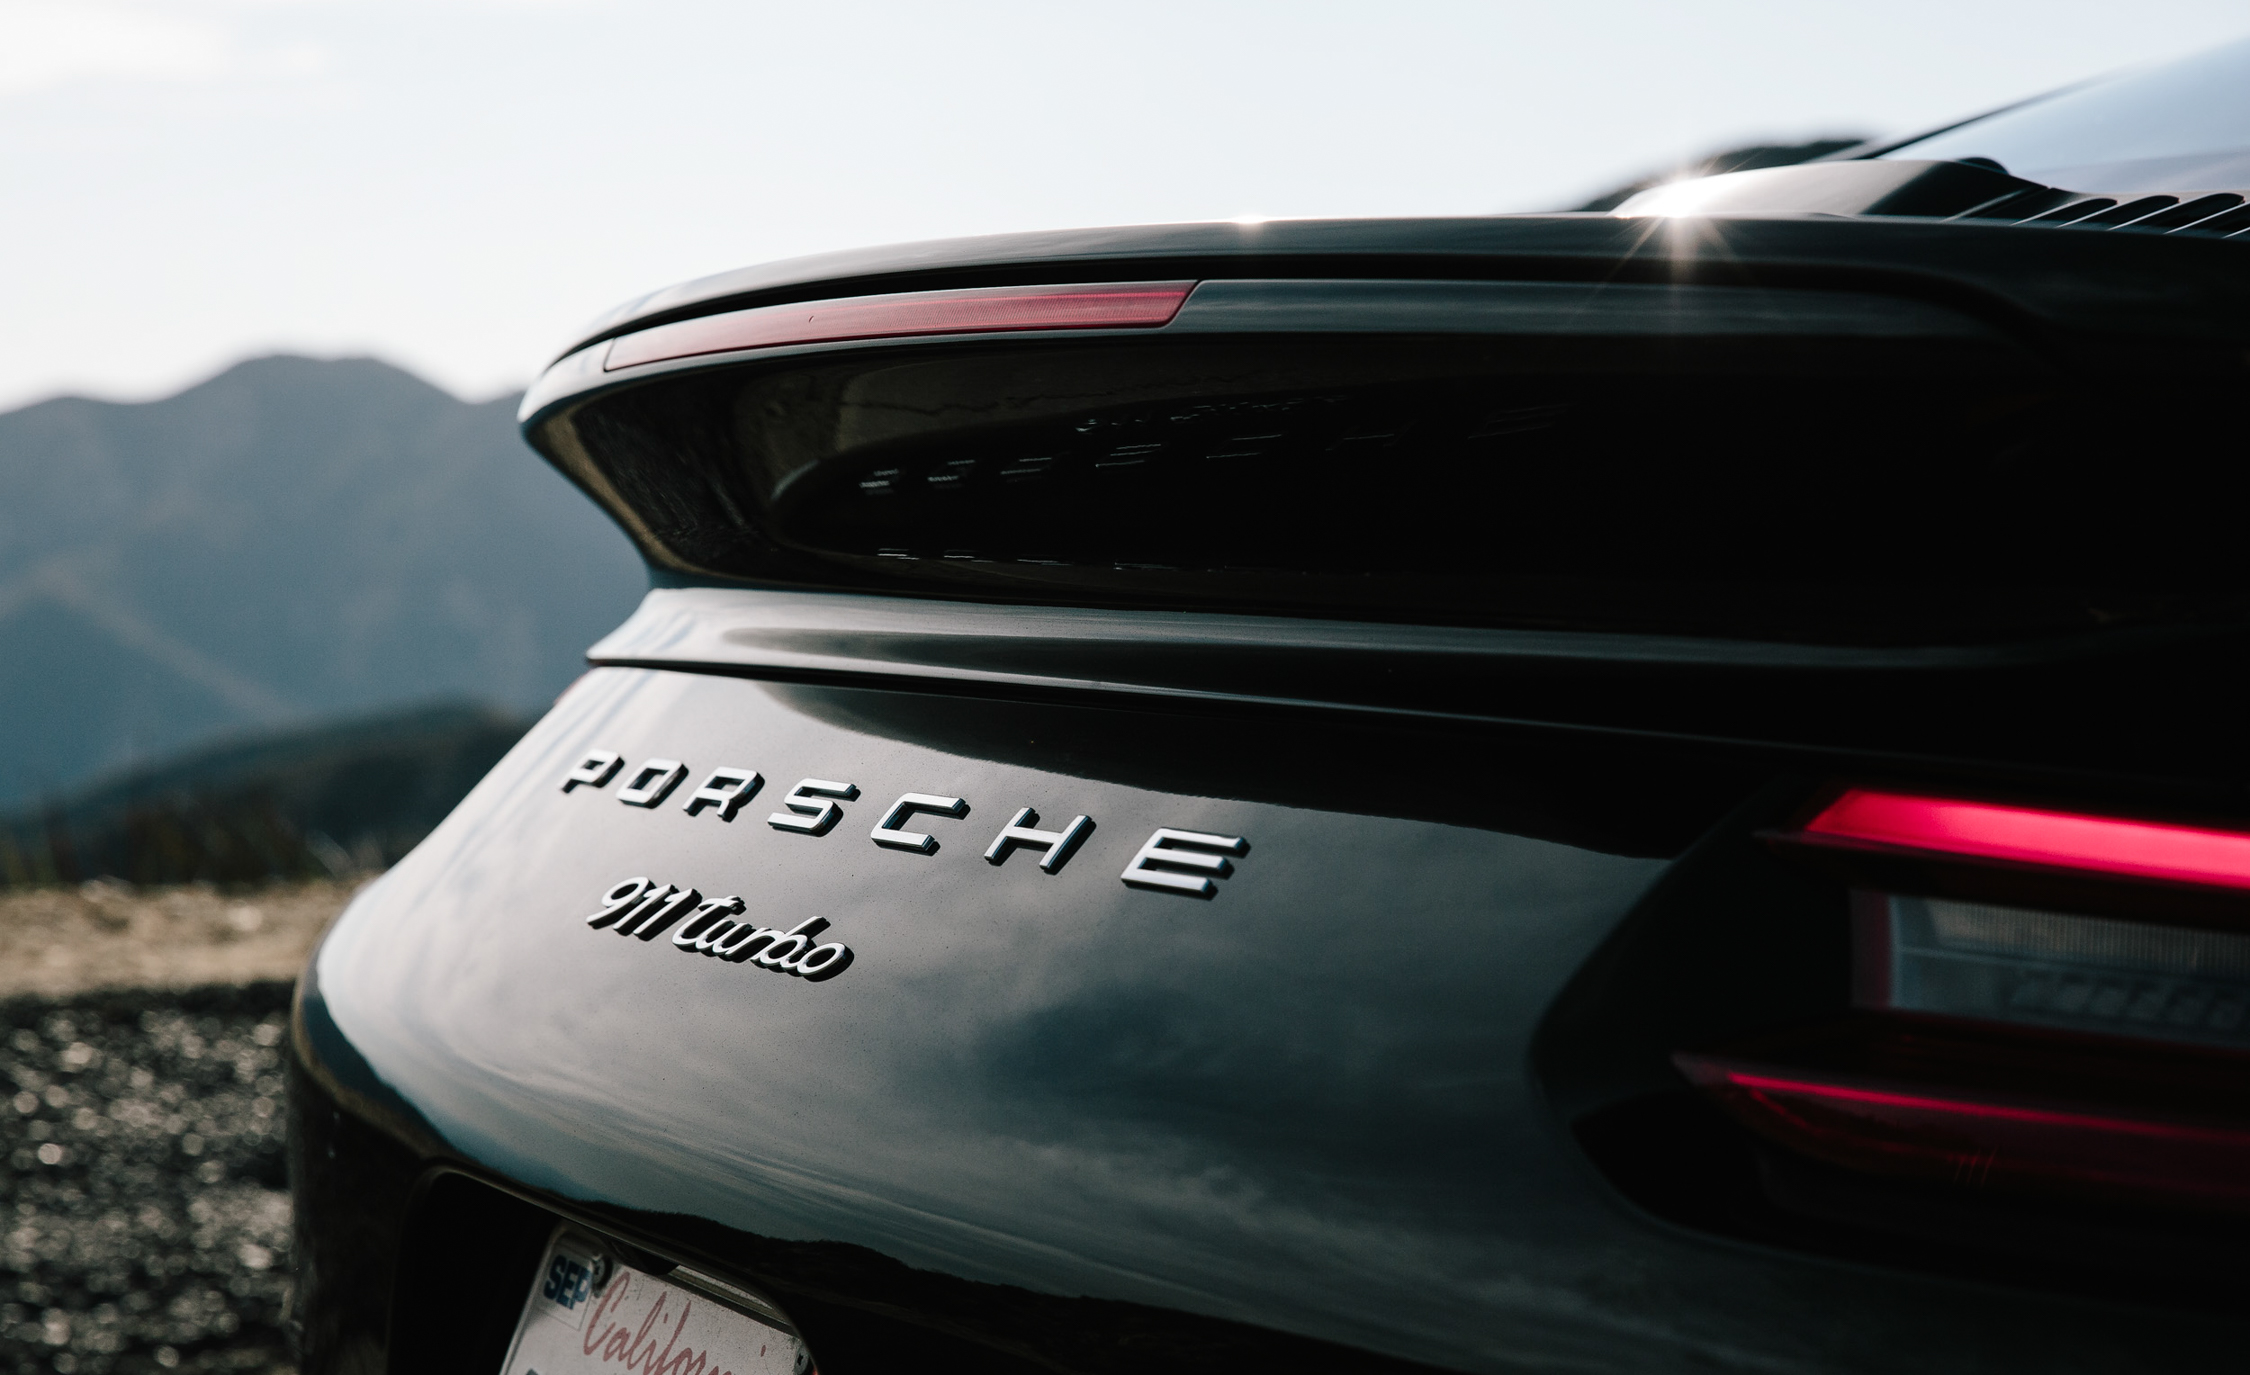 2017 Porsche 911 Turbo Exterior View Rear Badge (Photo 10 of 58)